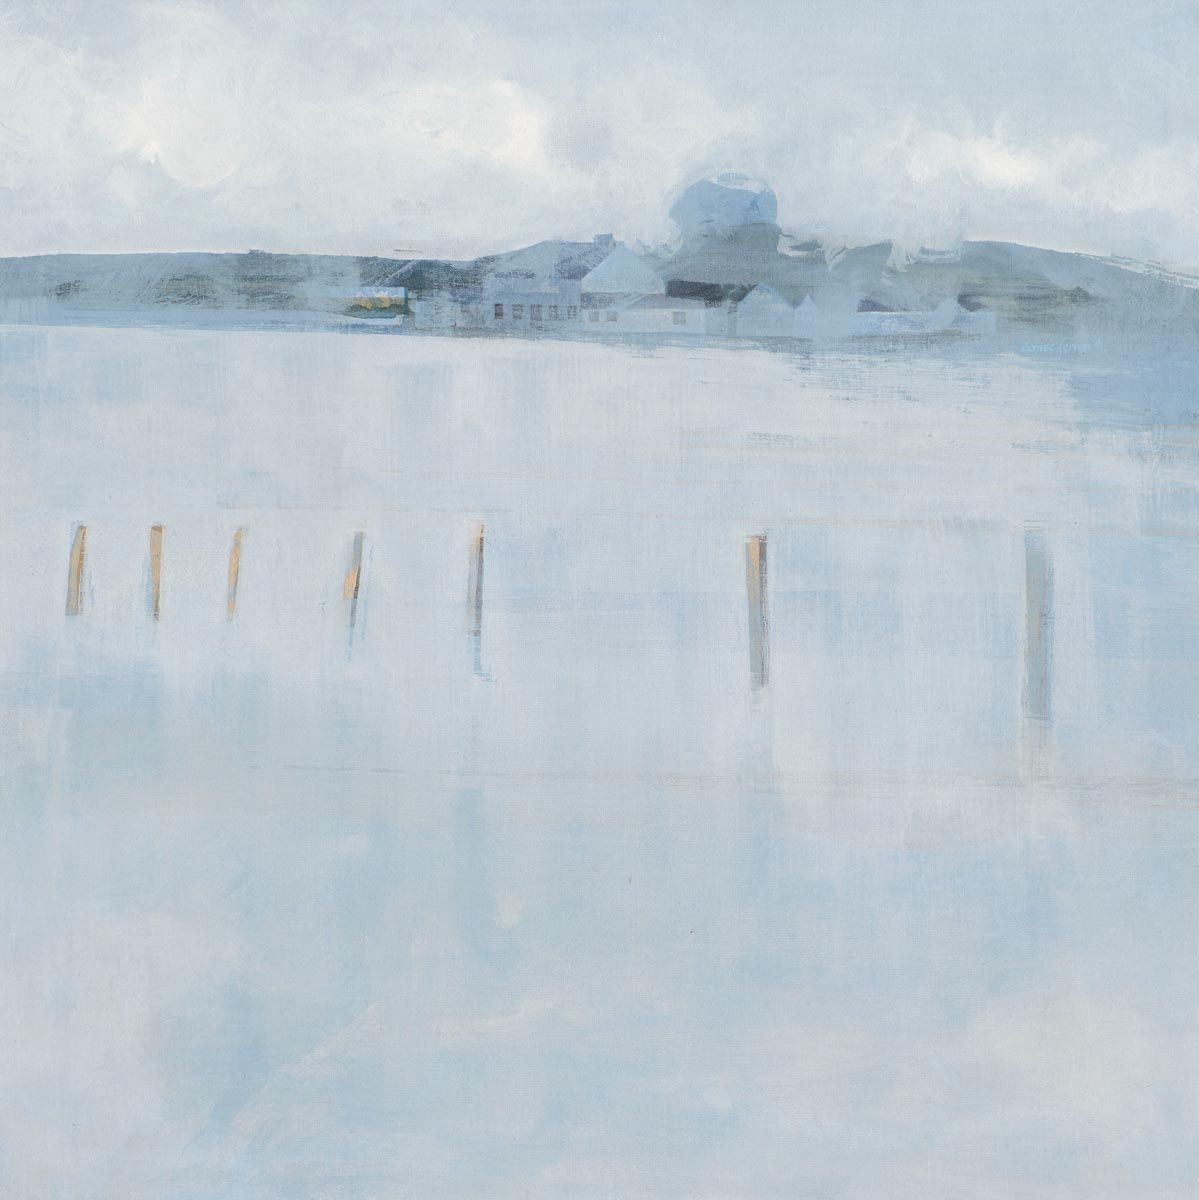 Denise Ferran (20th/21st Century), Culdaff Co. Donegal at Morgan O'Driscoll Art Auctions